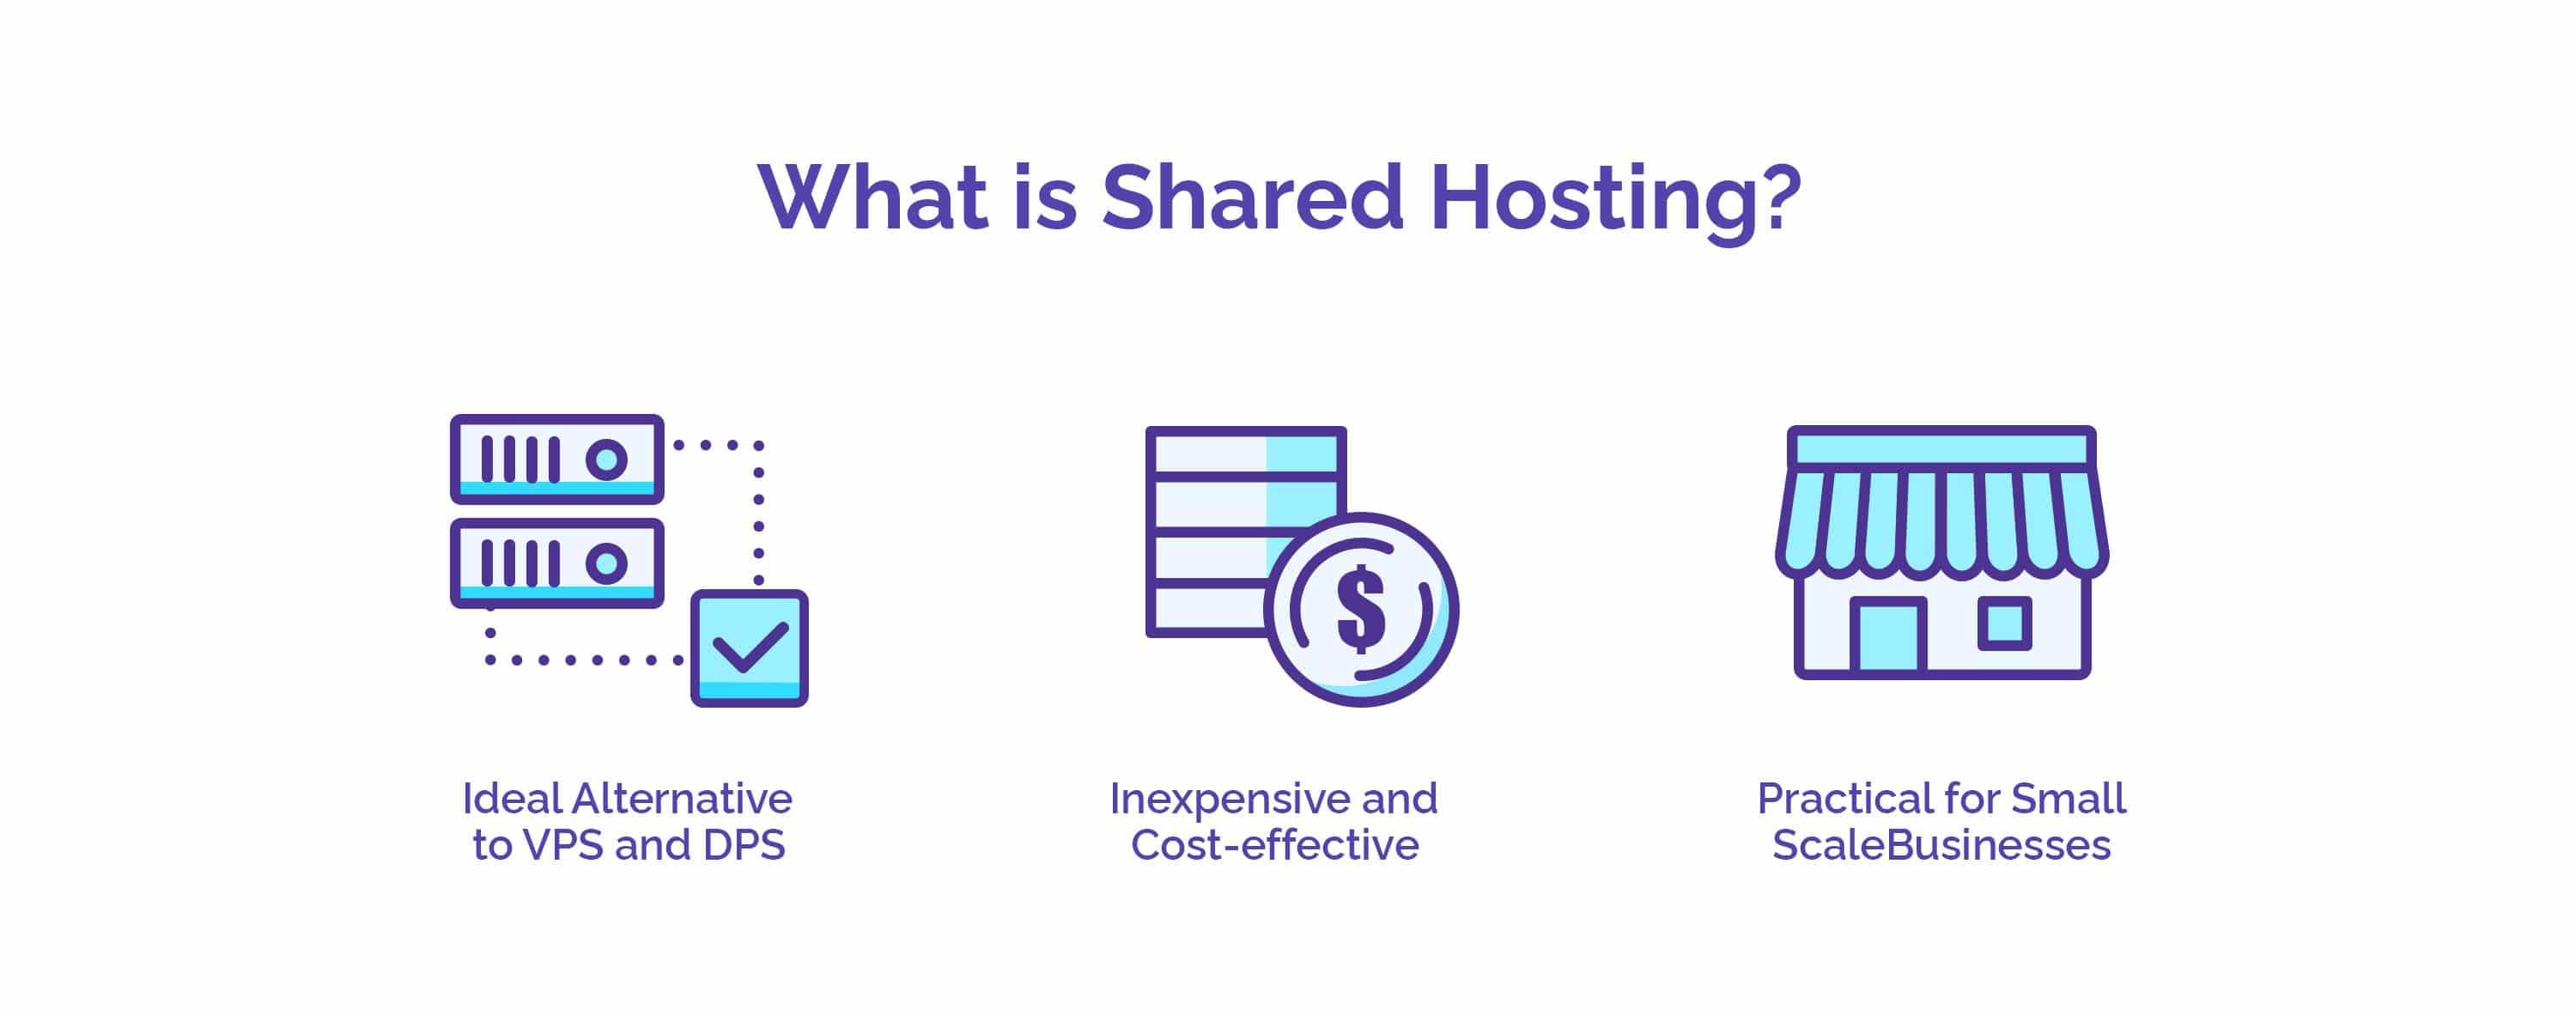 Shared Hosting: A Perfect Web Hosting Solution for Small Online